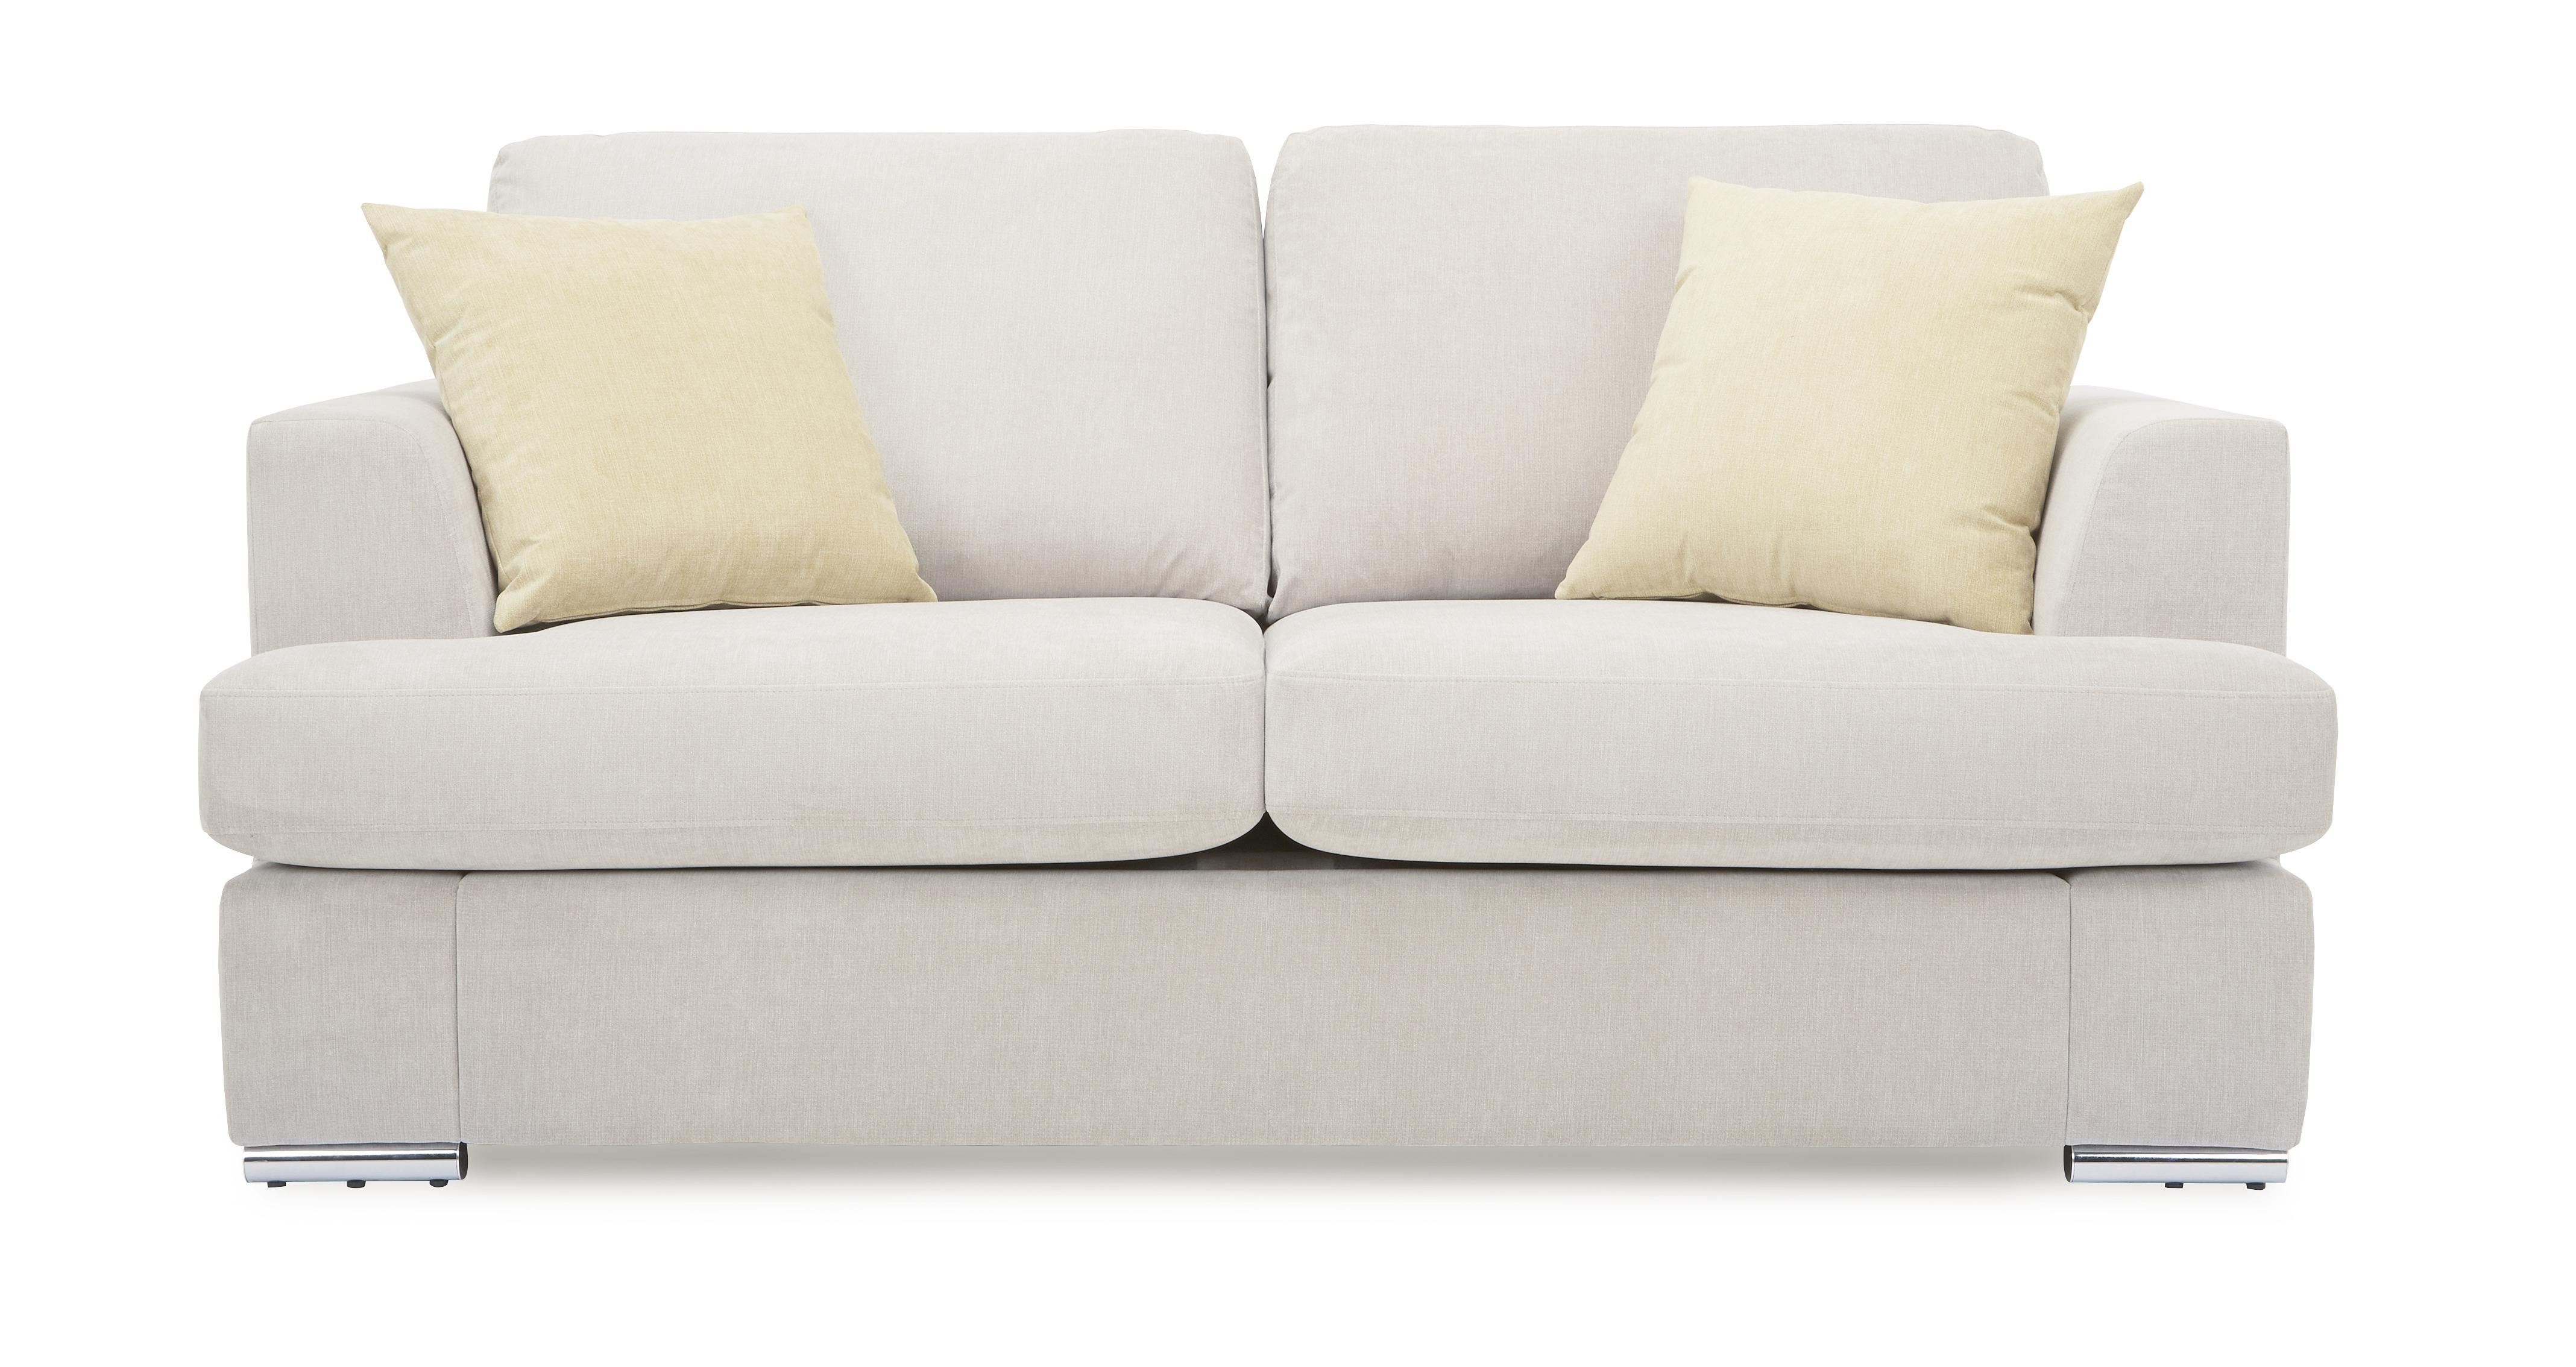 Dfs Freya 2 Seater Sofa Bed